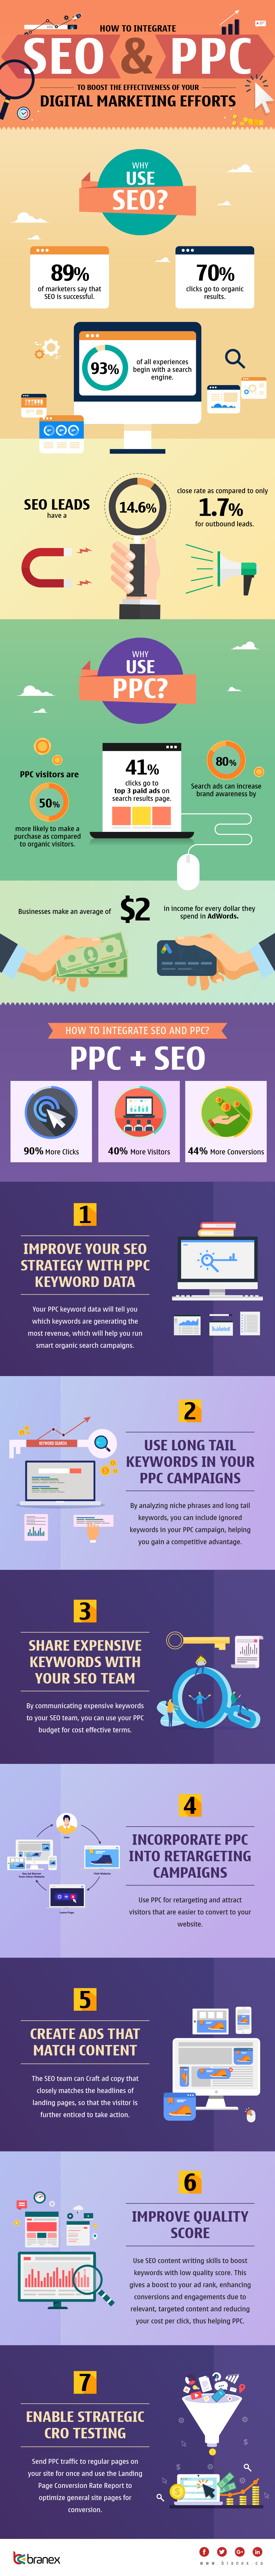 How to Integrate SEO and PPC to Boost the Effectiveness of Your Digital Marketing Effort - infographic